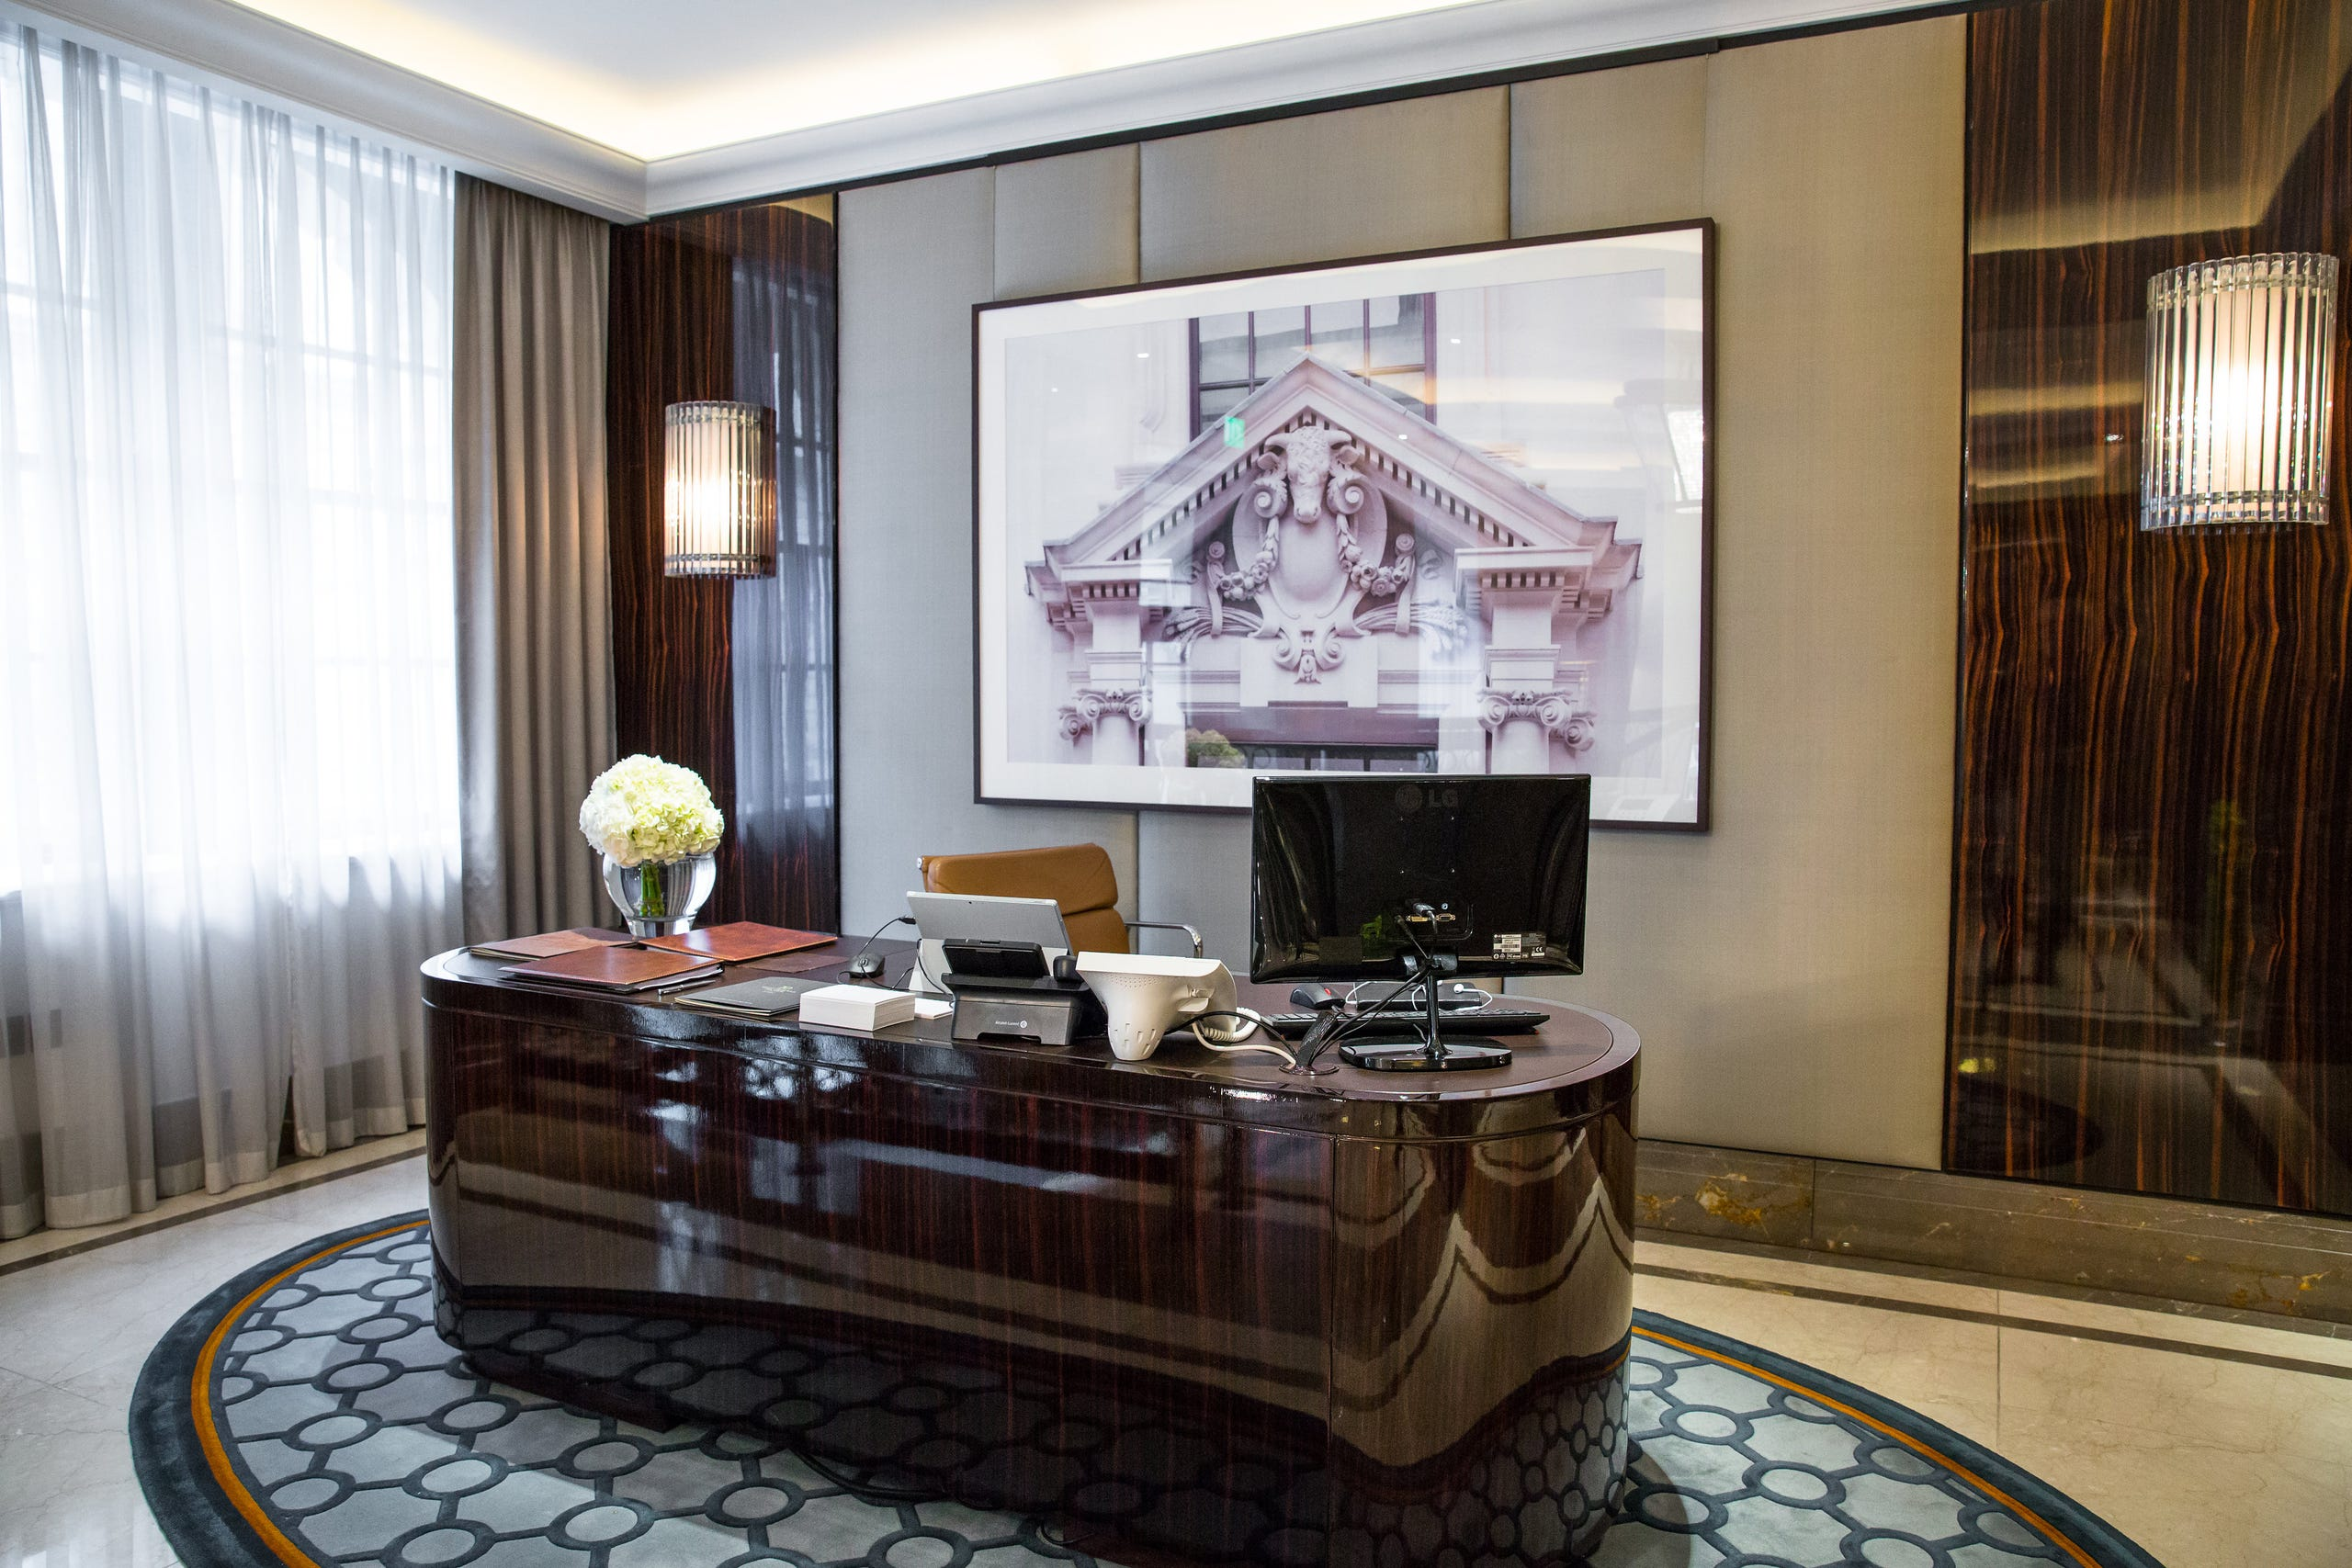 Photos: This luxury hotel suite could be yours for $14 million